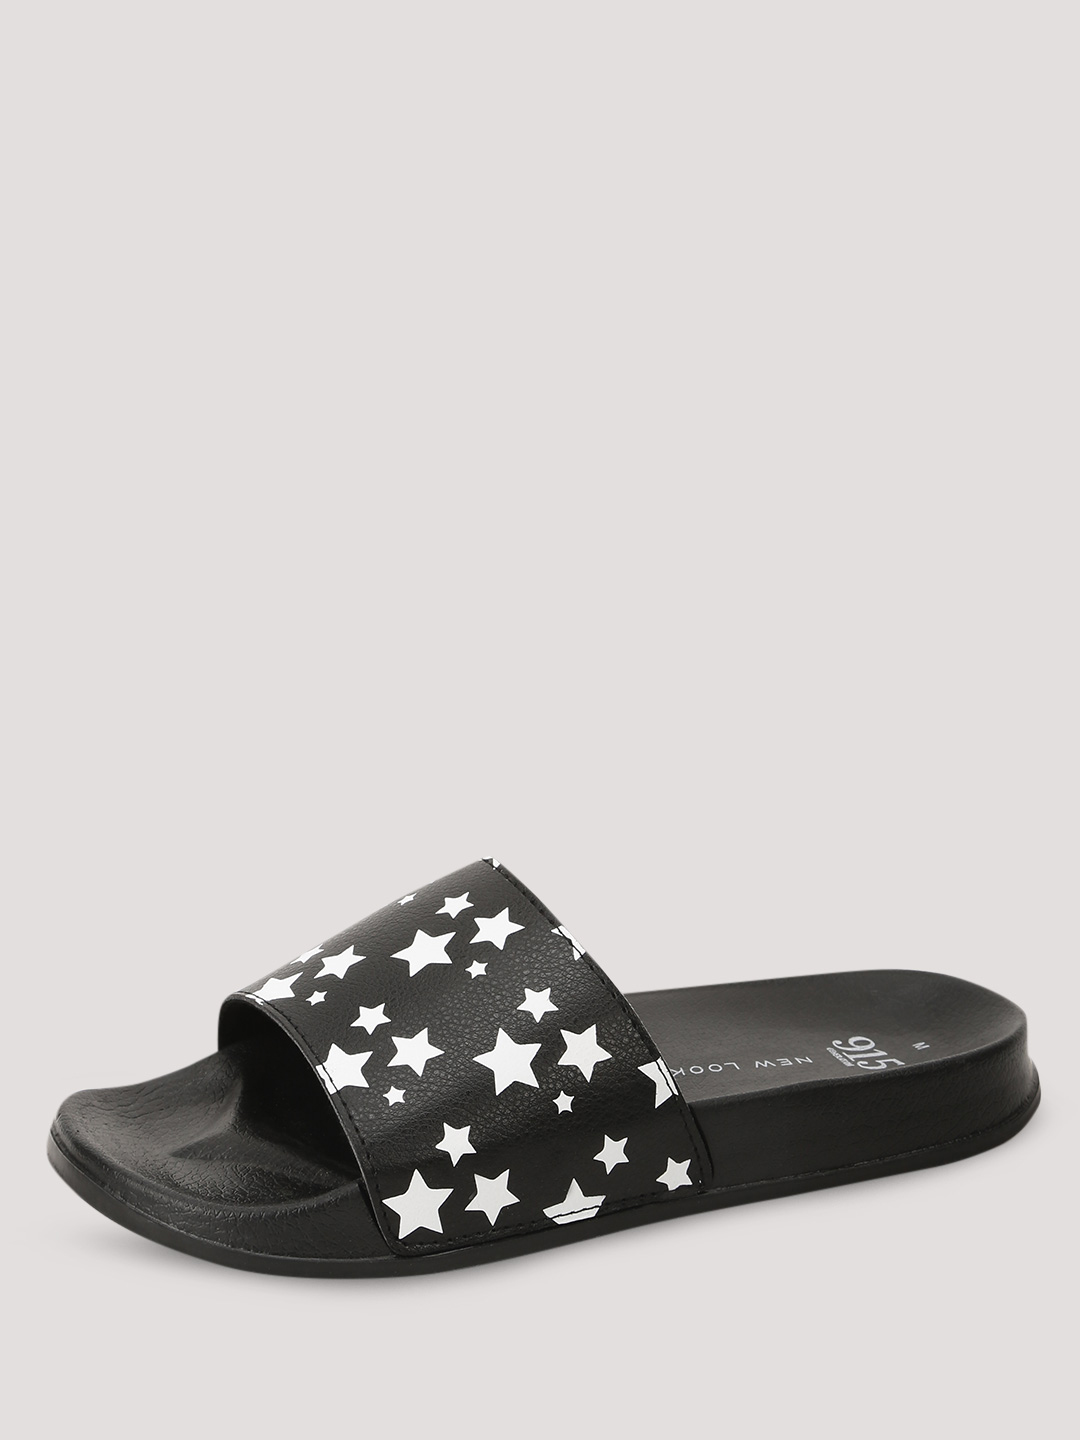 New Look Black Star Print Sliders 1